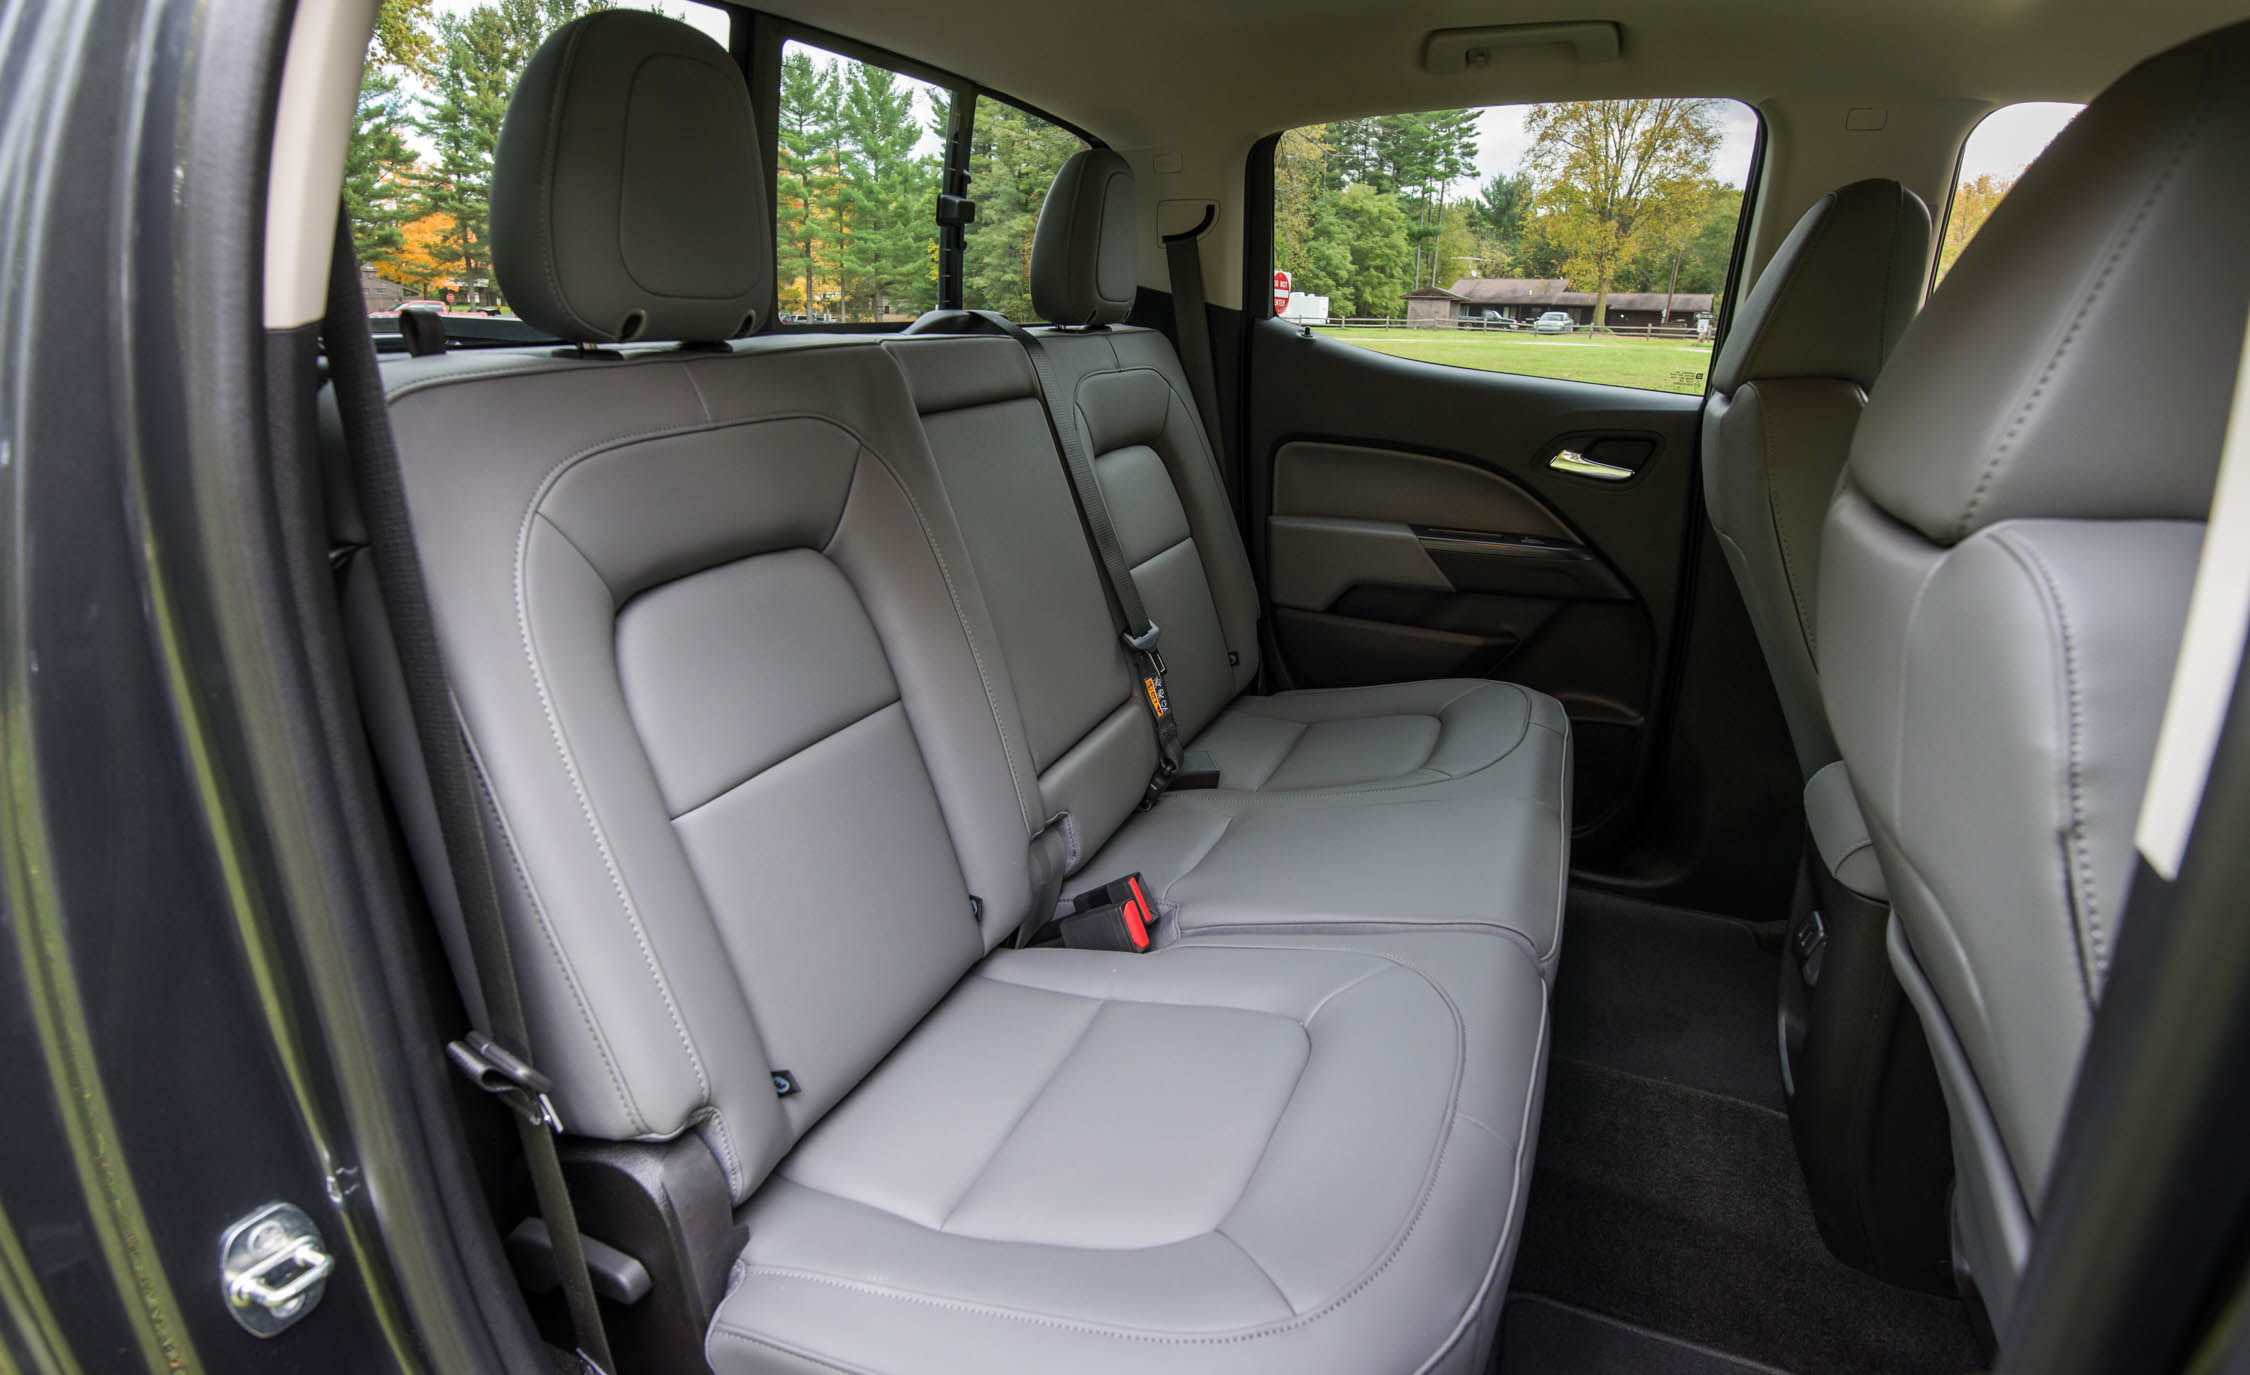 2017 Chevrolet Colorado LT Interior Seats Rear (Photo 32 of 41)